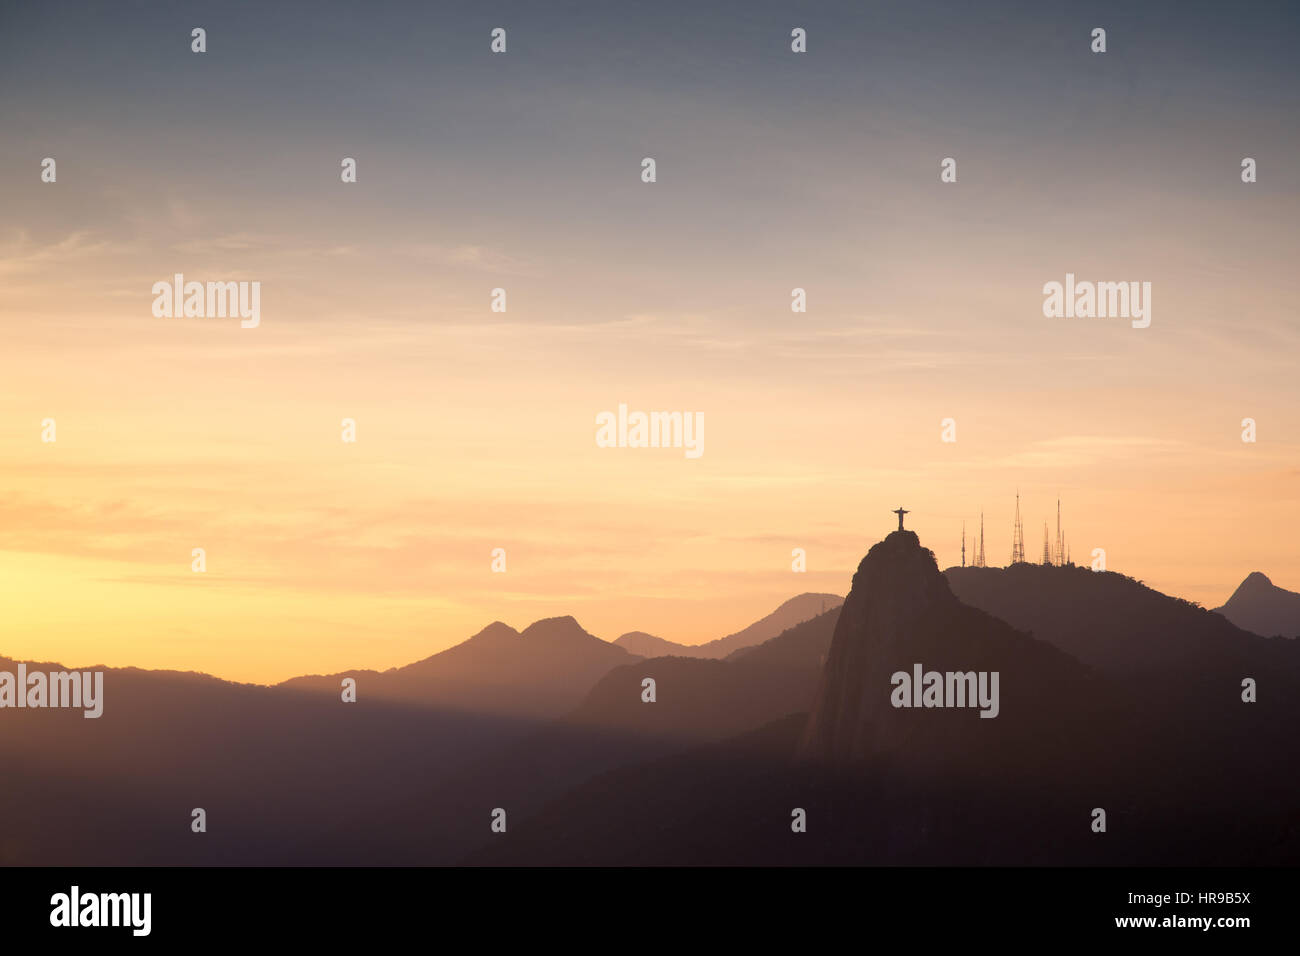 View of Christ Redeemer on Corcovado mountain from Sugar Loaf Mountain (Pao de Acucar) and Botafogo Bay at dusk, Stock Photo